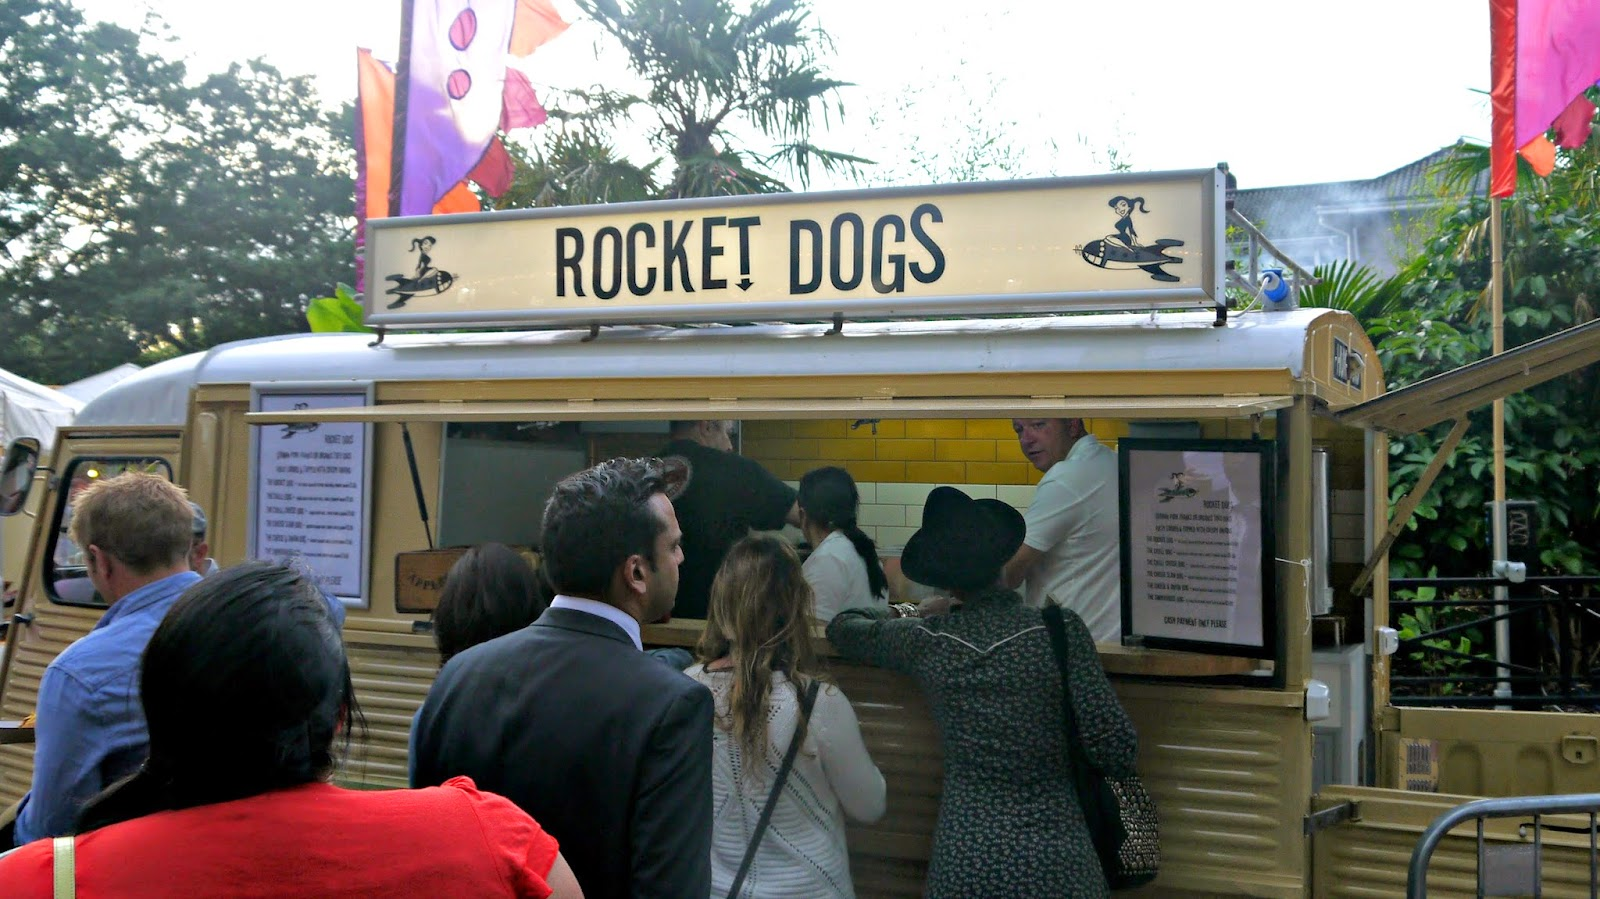 London Zoo lates Rocket Dogs hot dogs